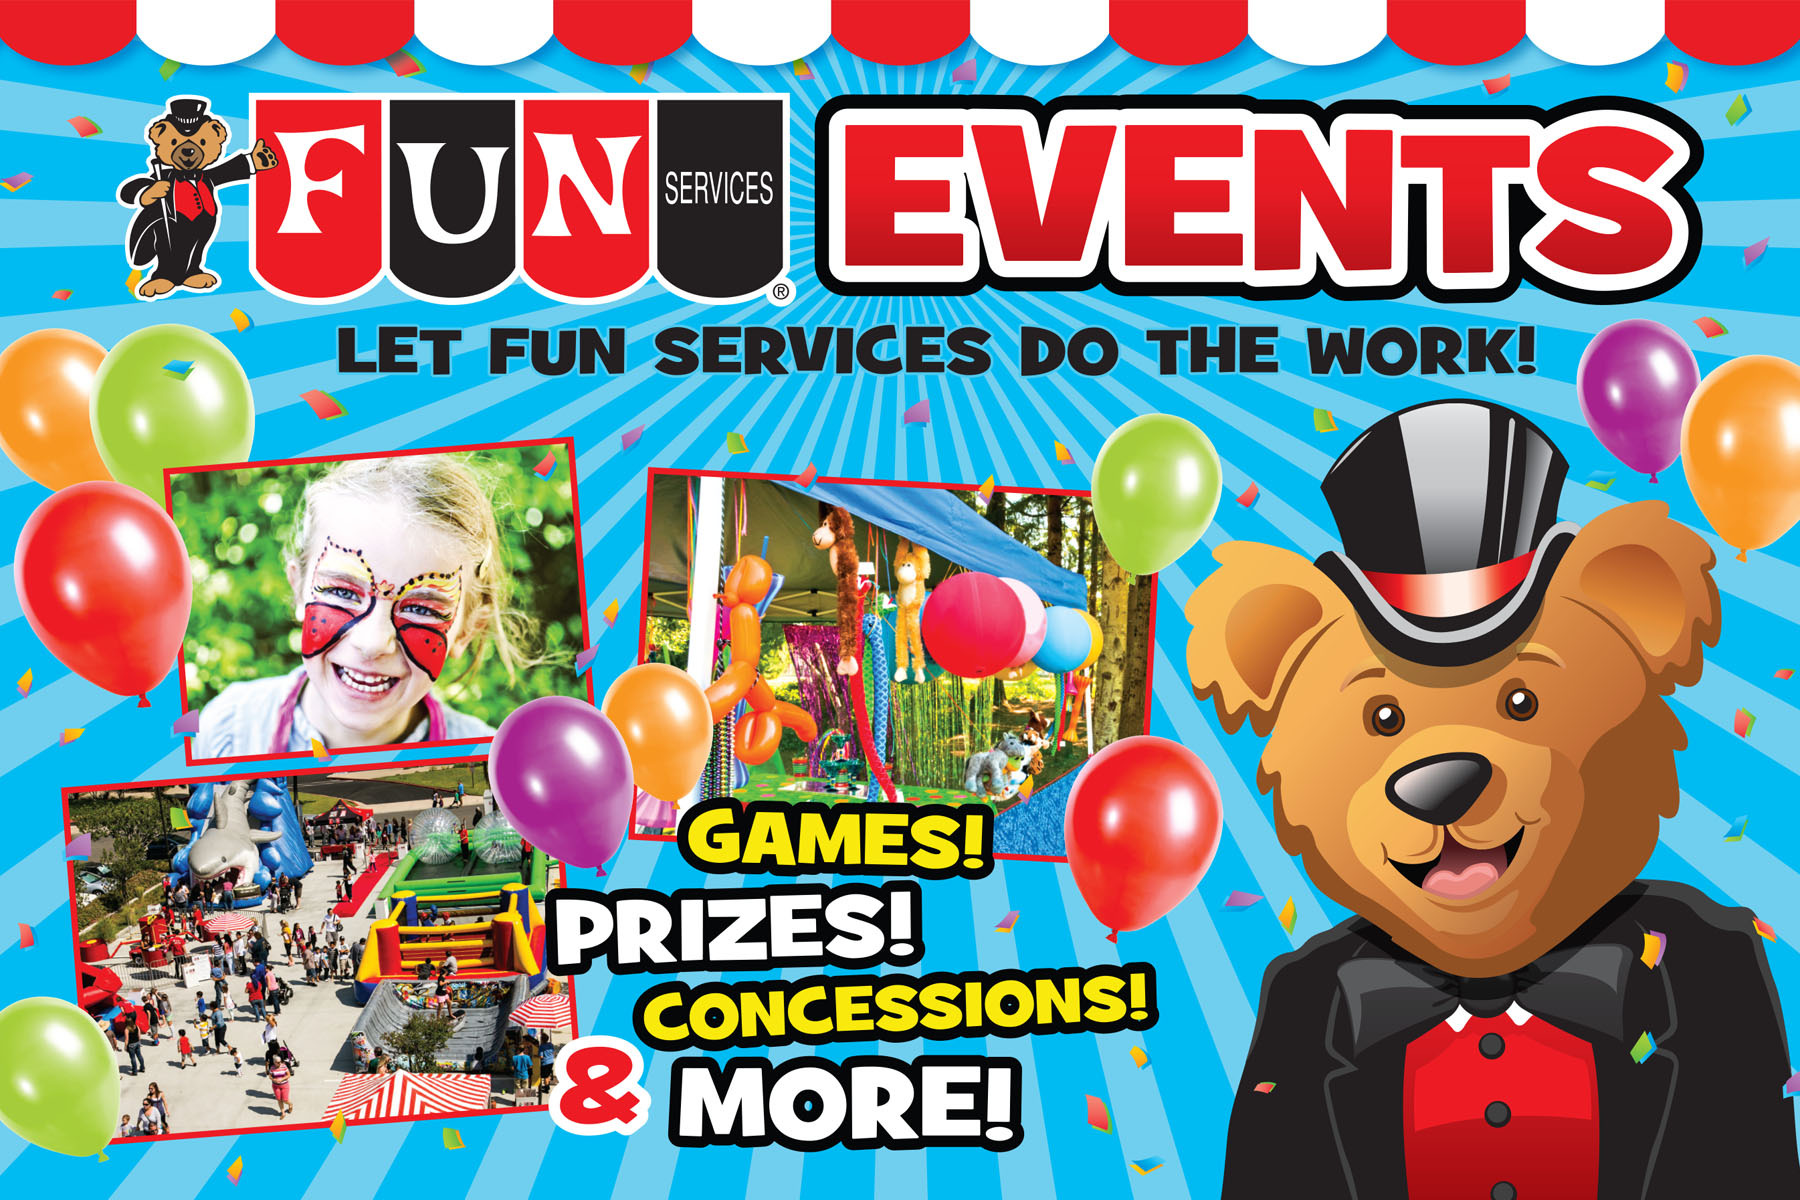 Fun Services Events, Party Rentals, Inflatables, Moonwalks